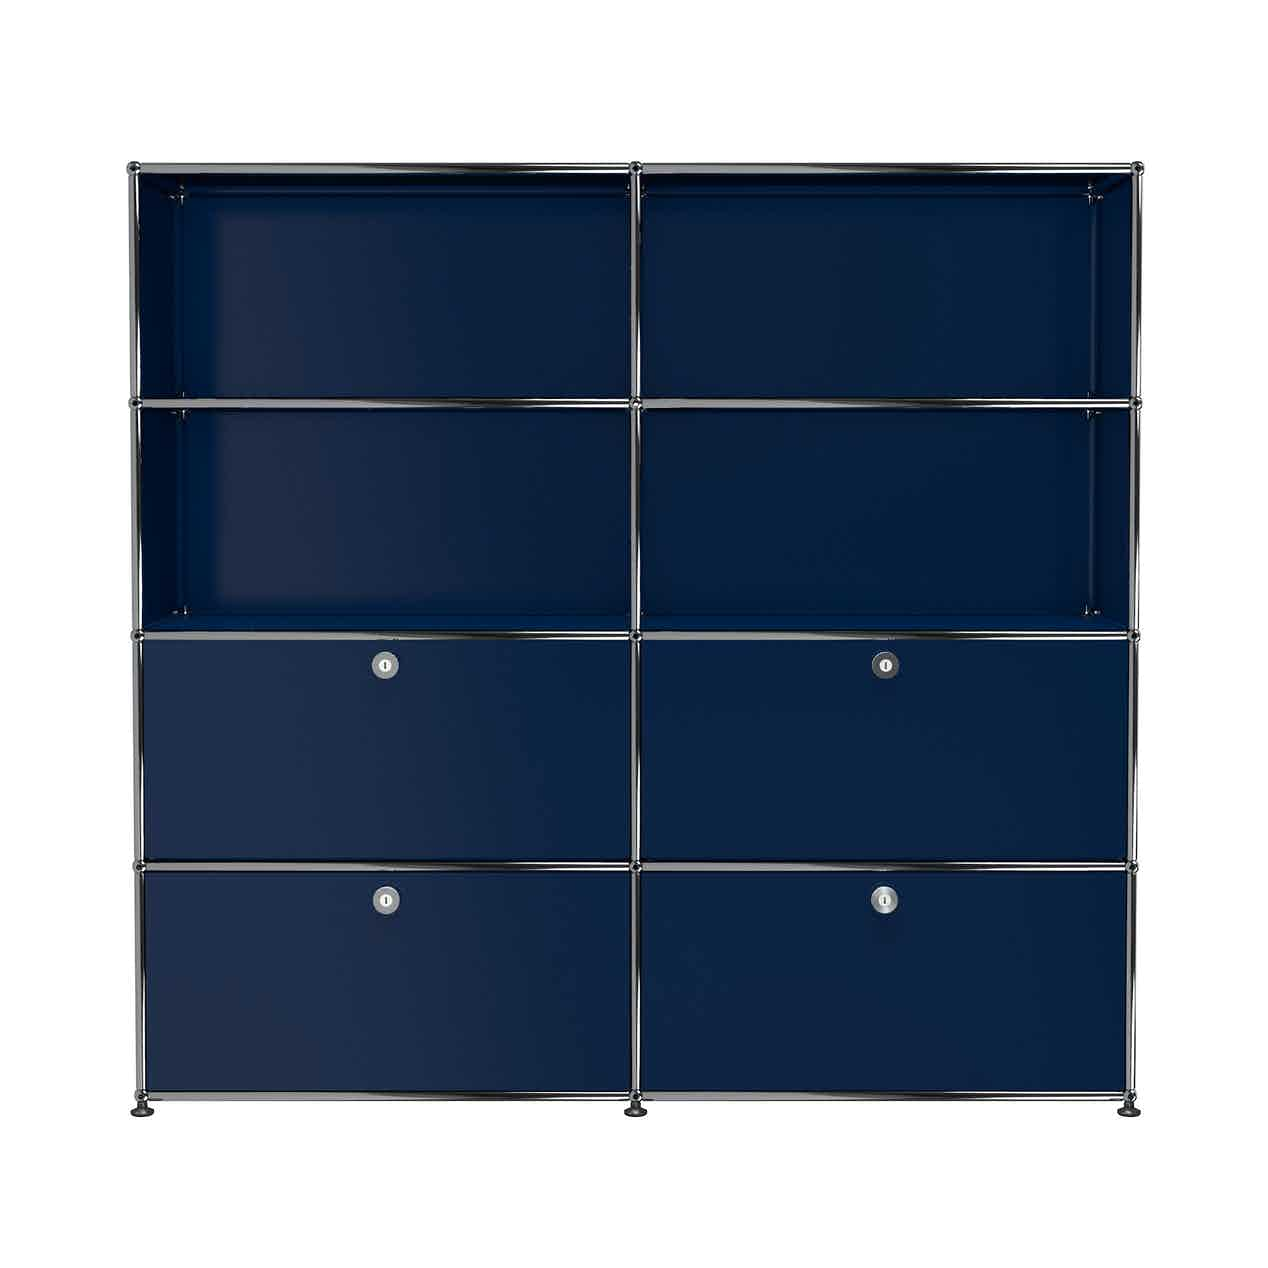 Usm-quick-ship-Haller-Storage-S2-steel-blue-haute-living